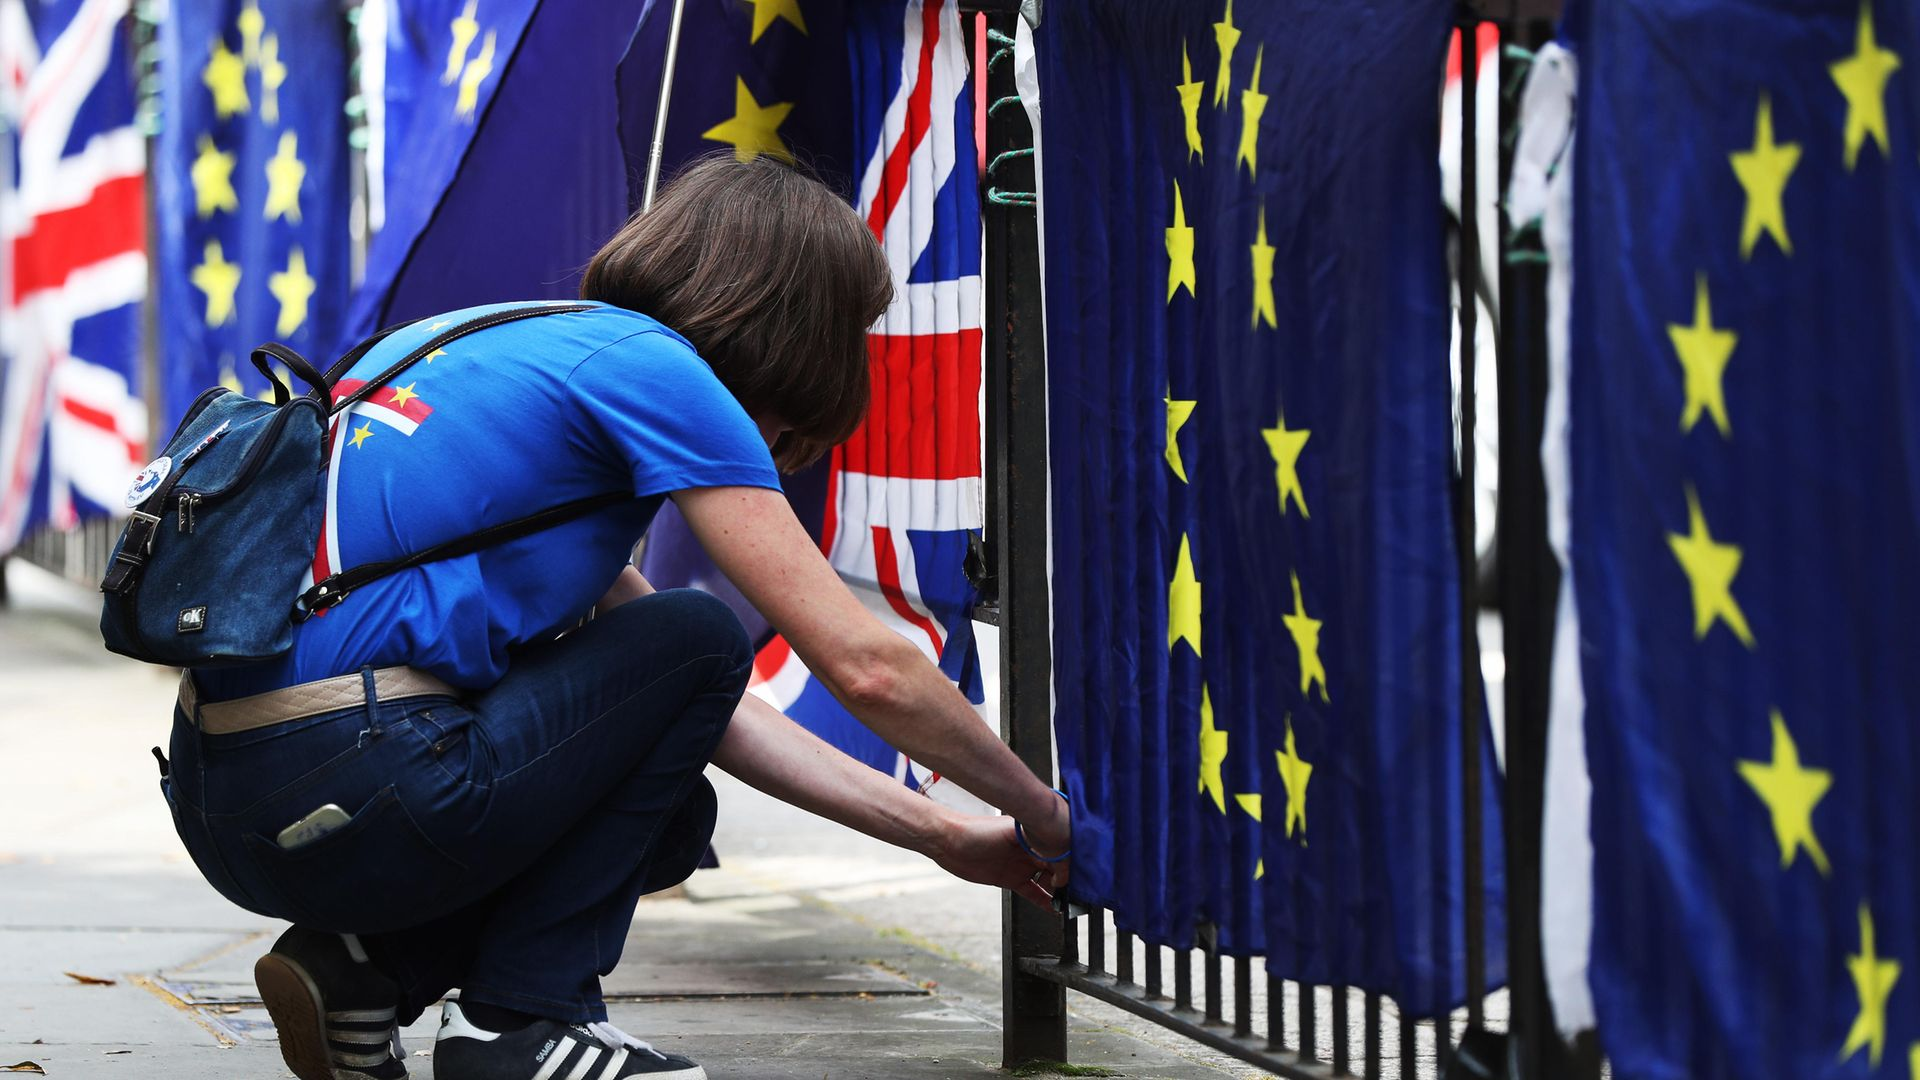 A pro-European activist with European flags - Credit: PA